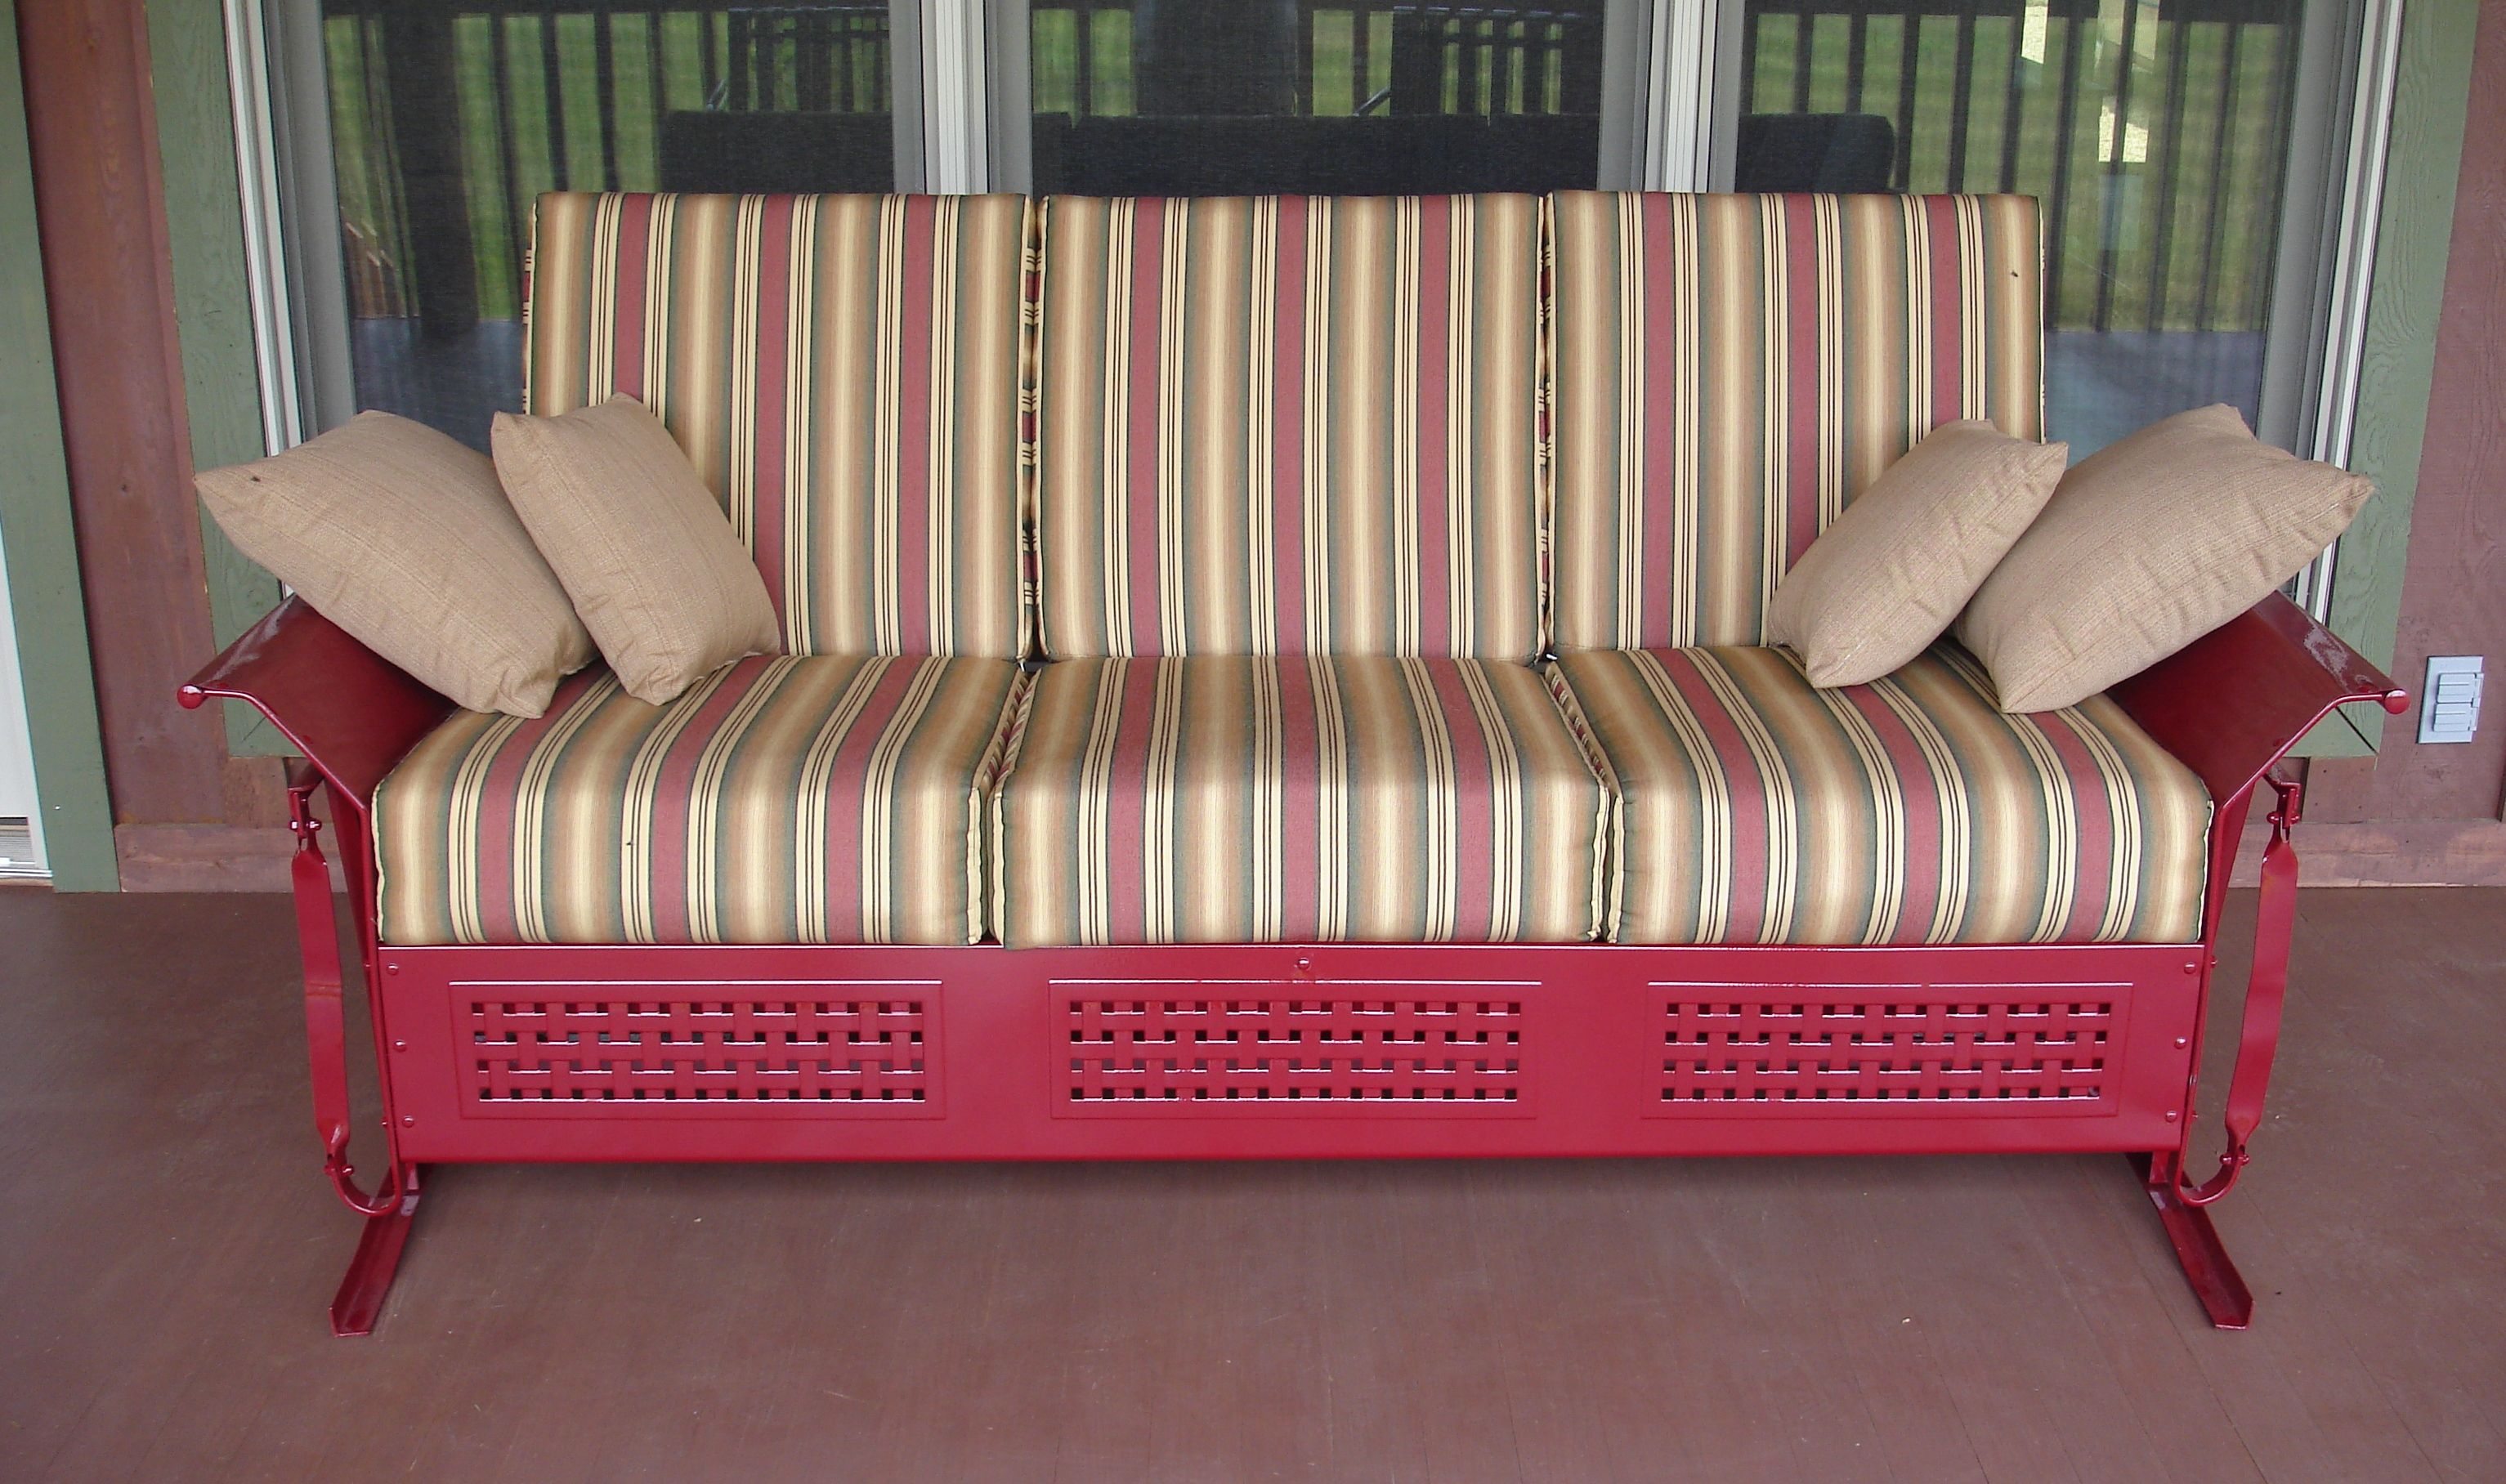 Comfy Old Fashioned Metal Vintage Porch Glider With Custom